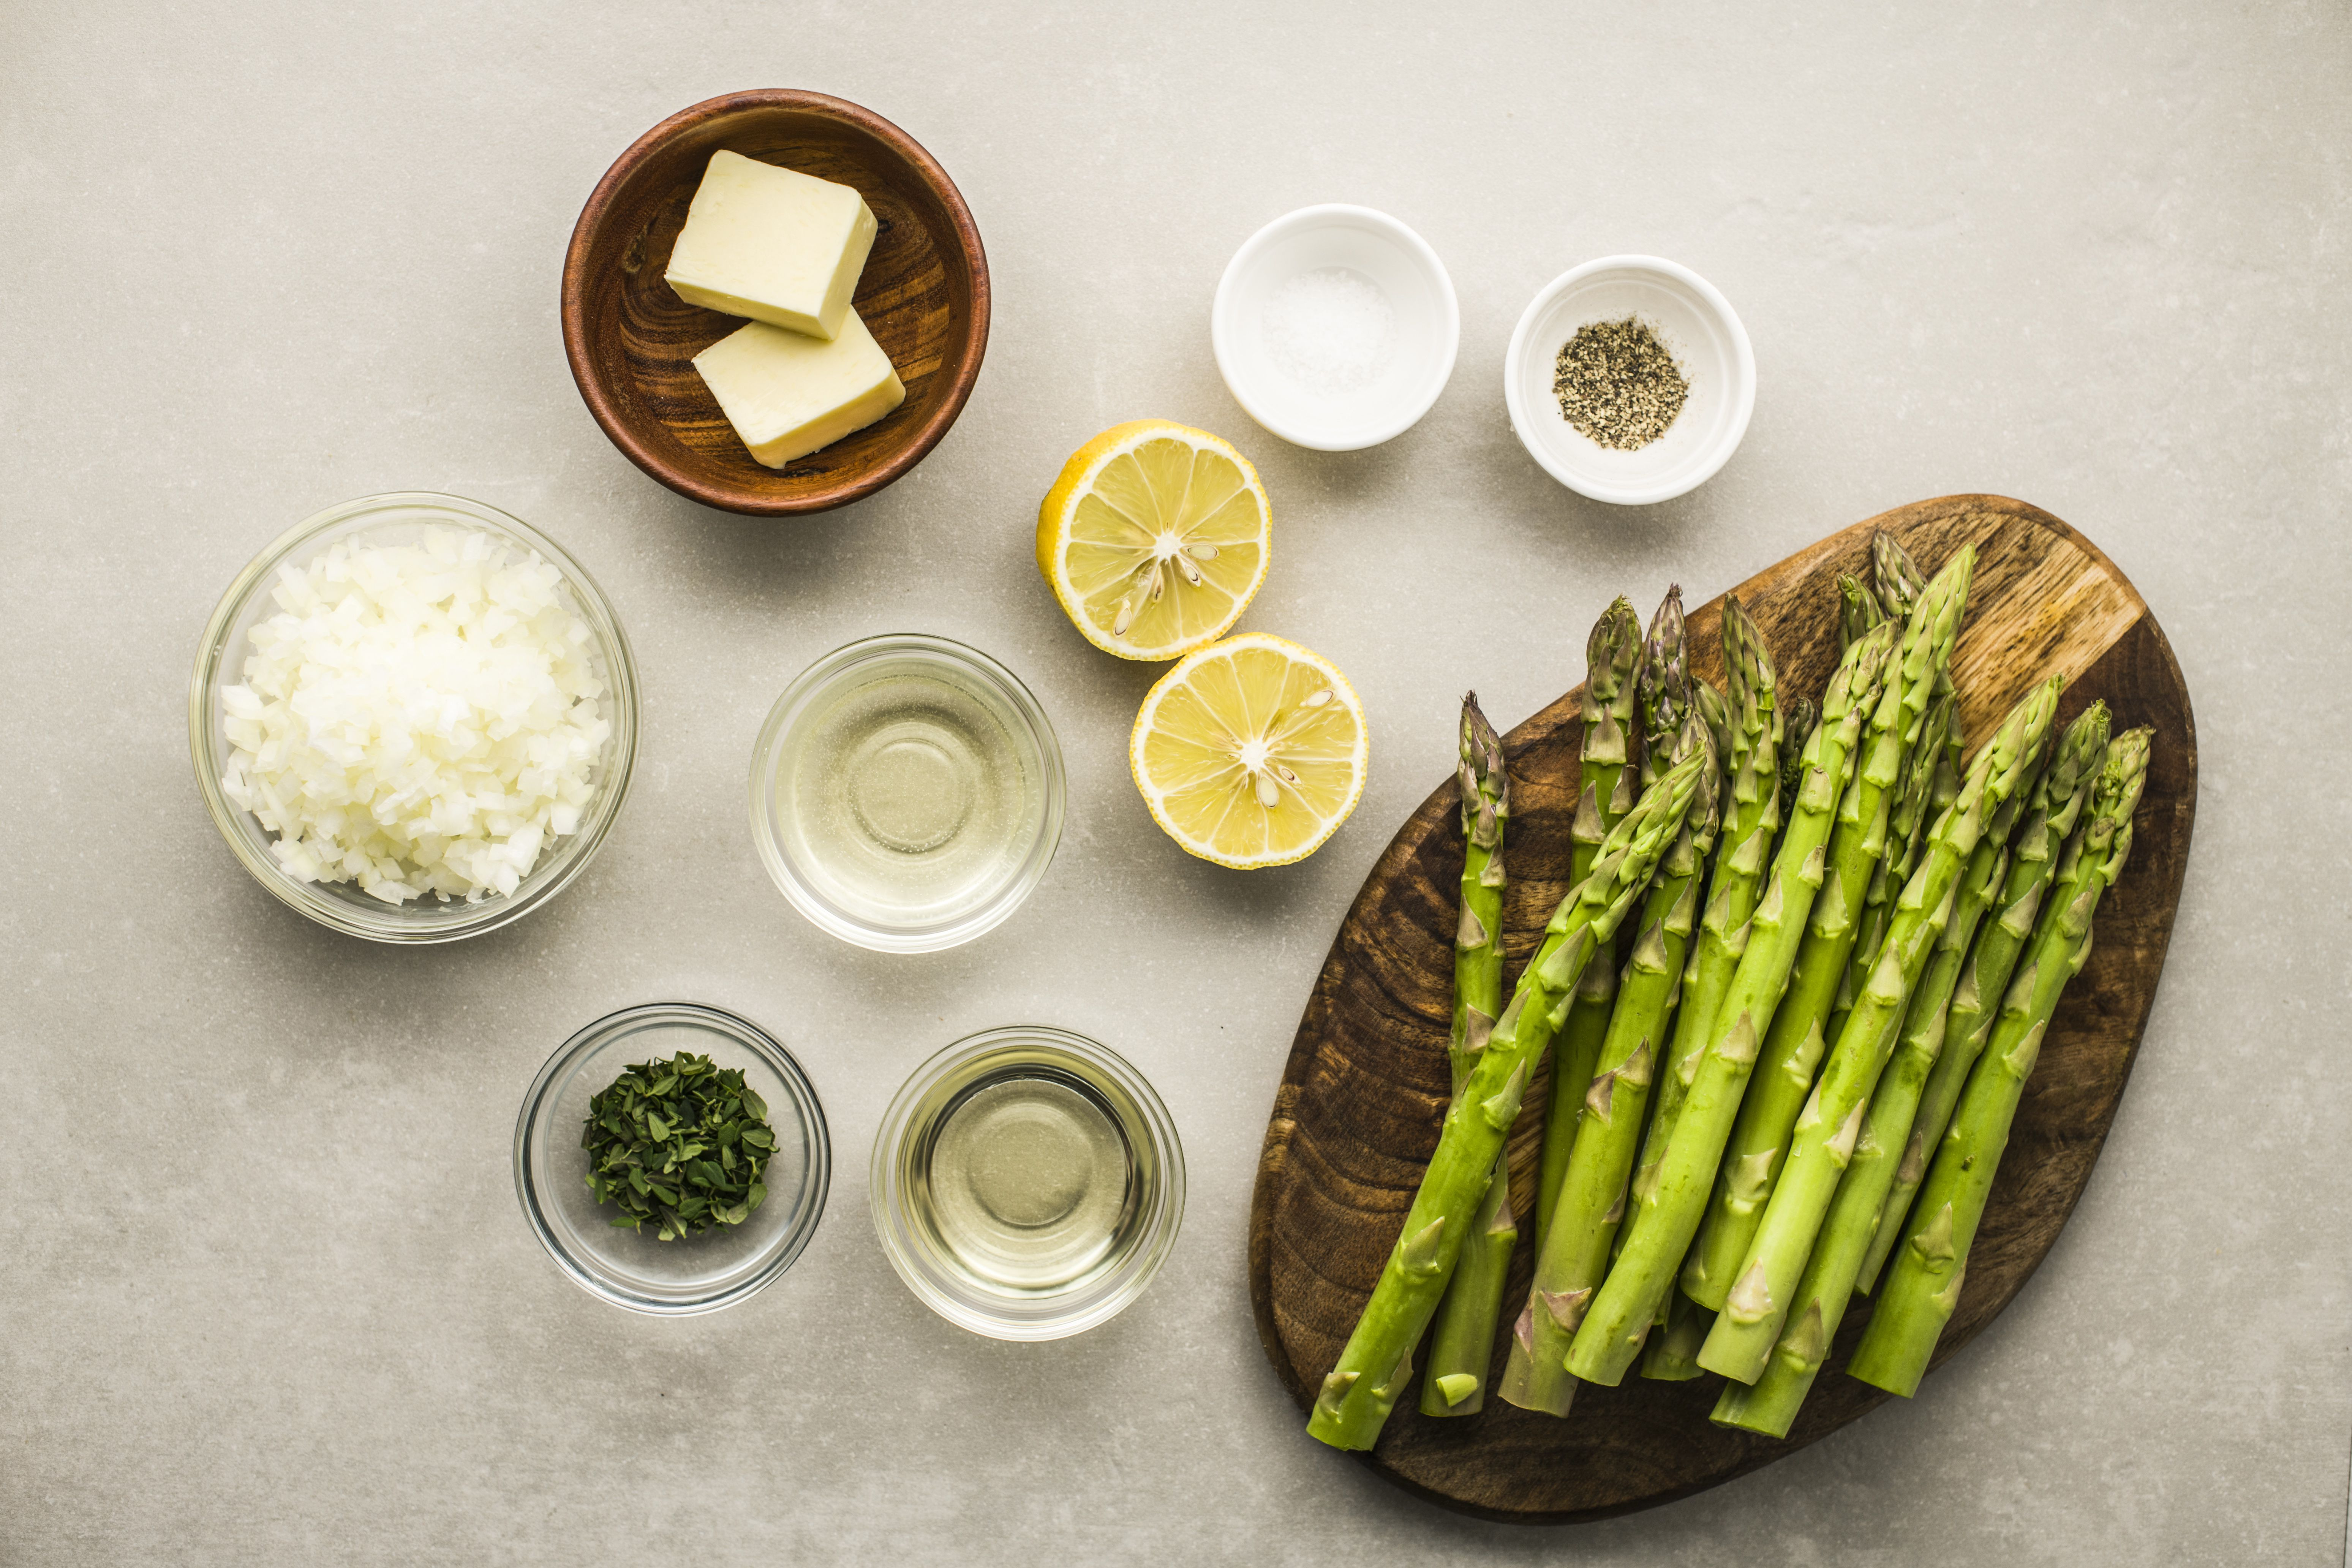 Ingredients for sauteed asparagus